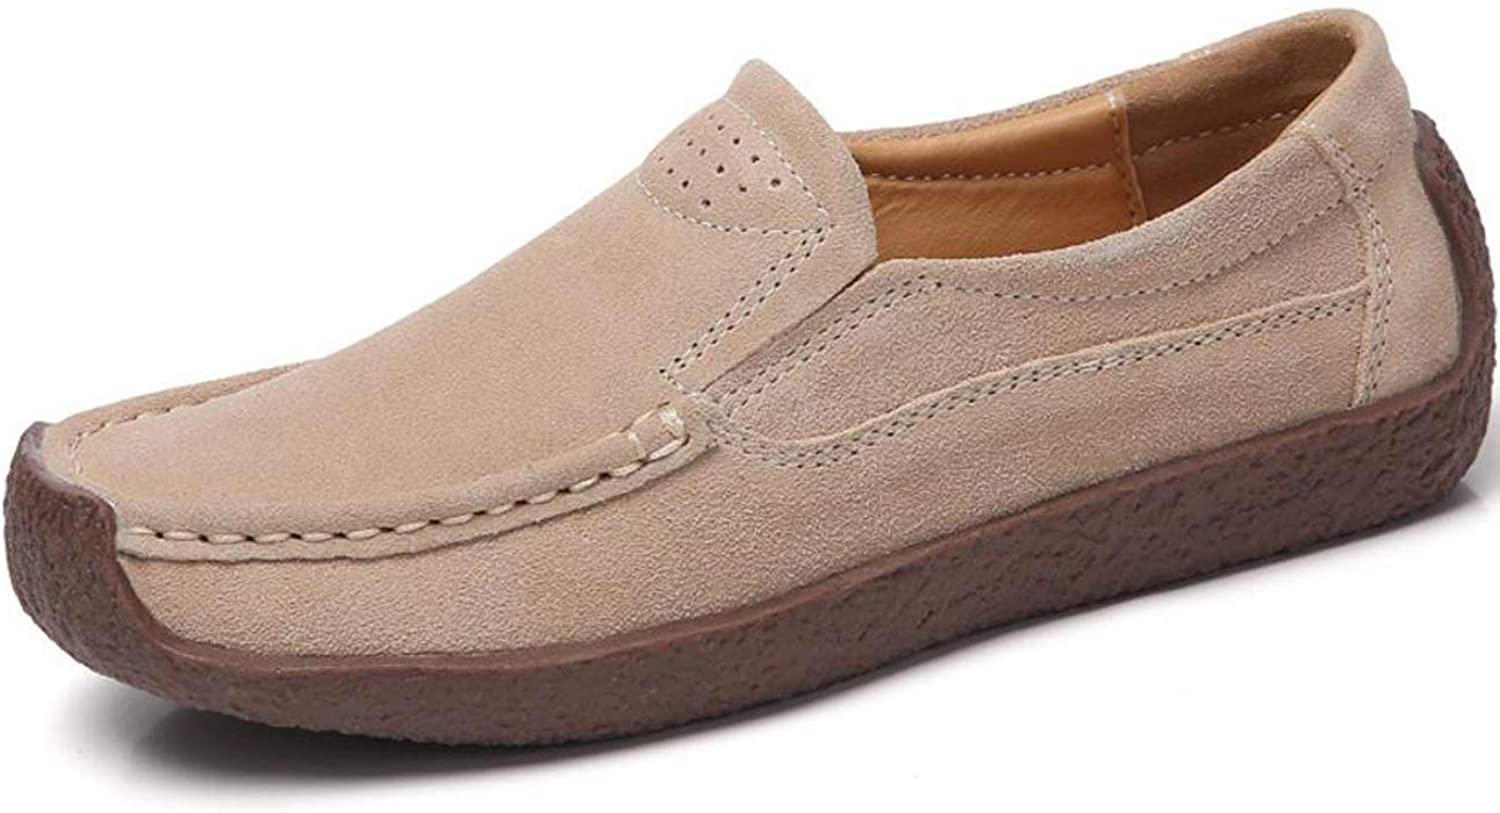 Fmshutp Womens Soft Leather Slip On Loafers Casual Flat Moccasins